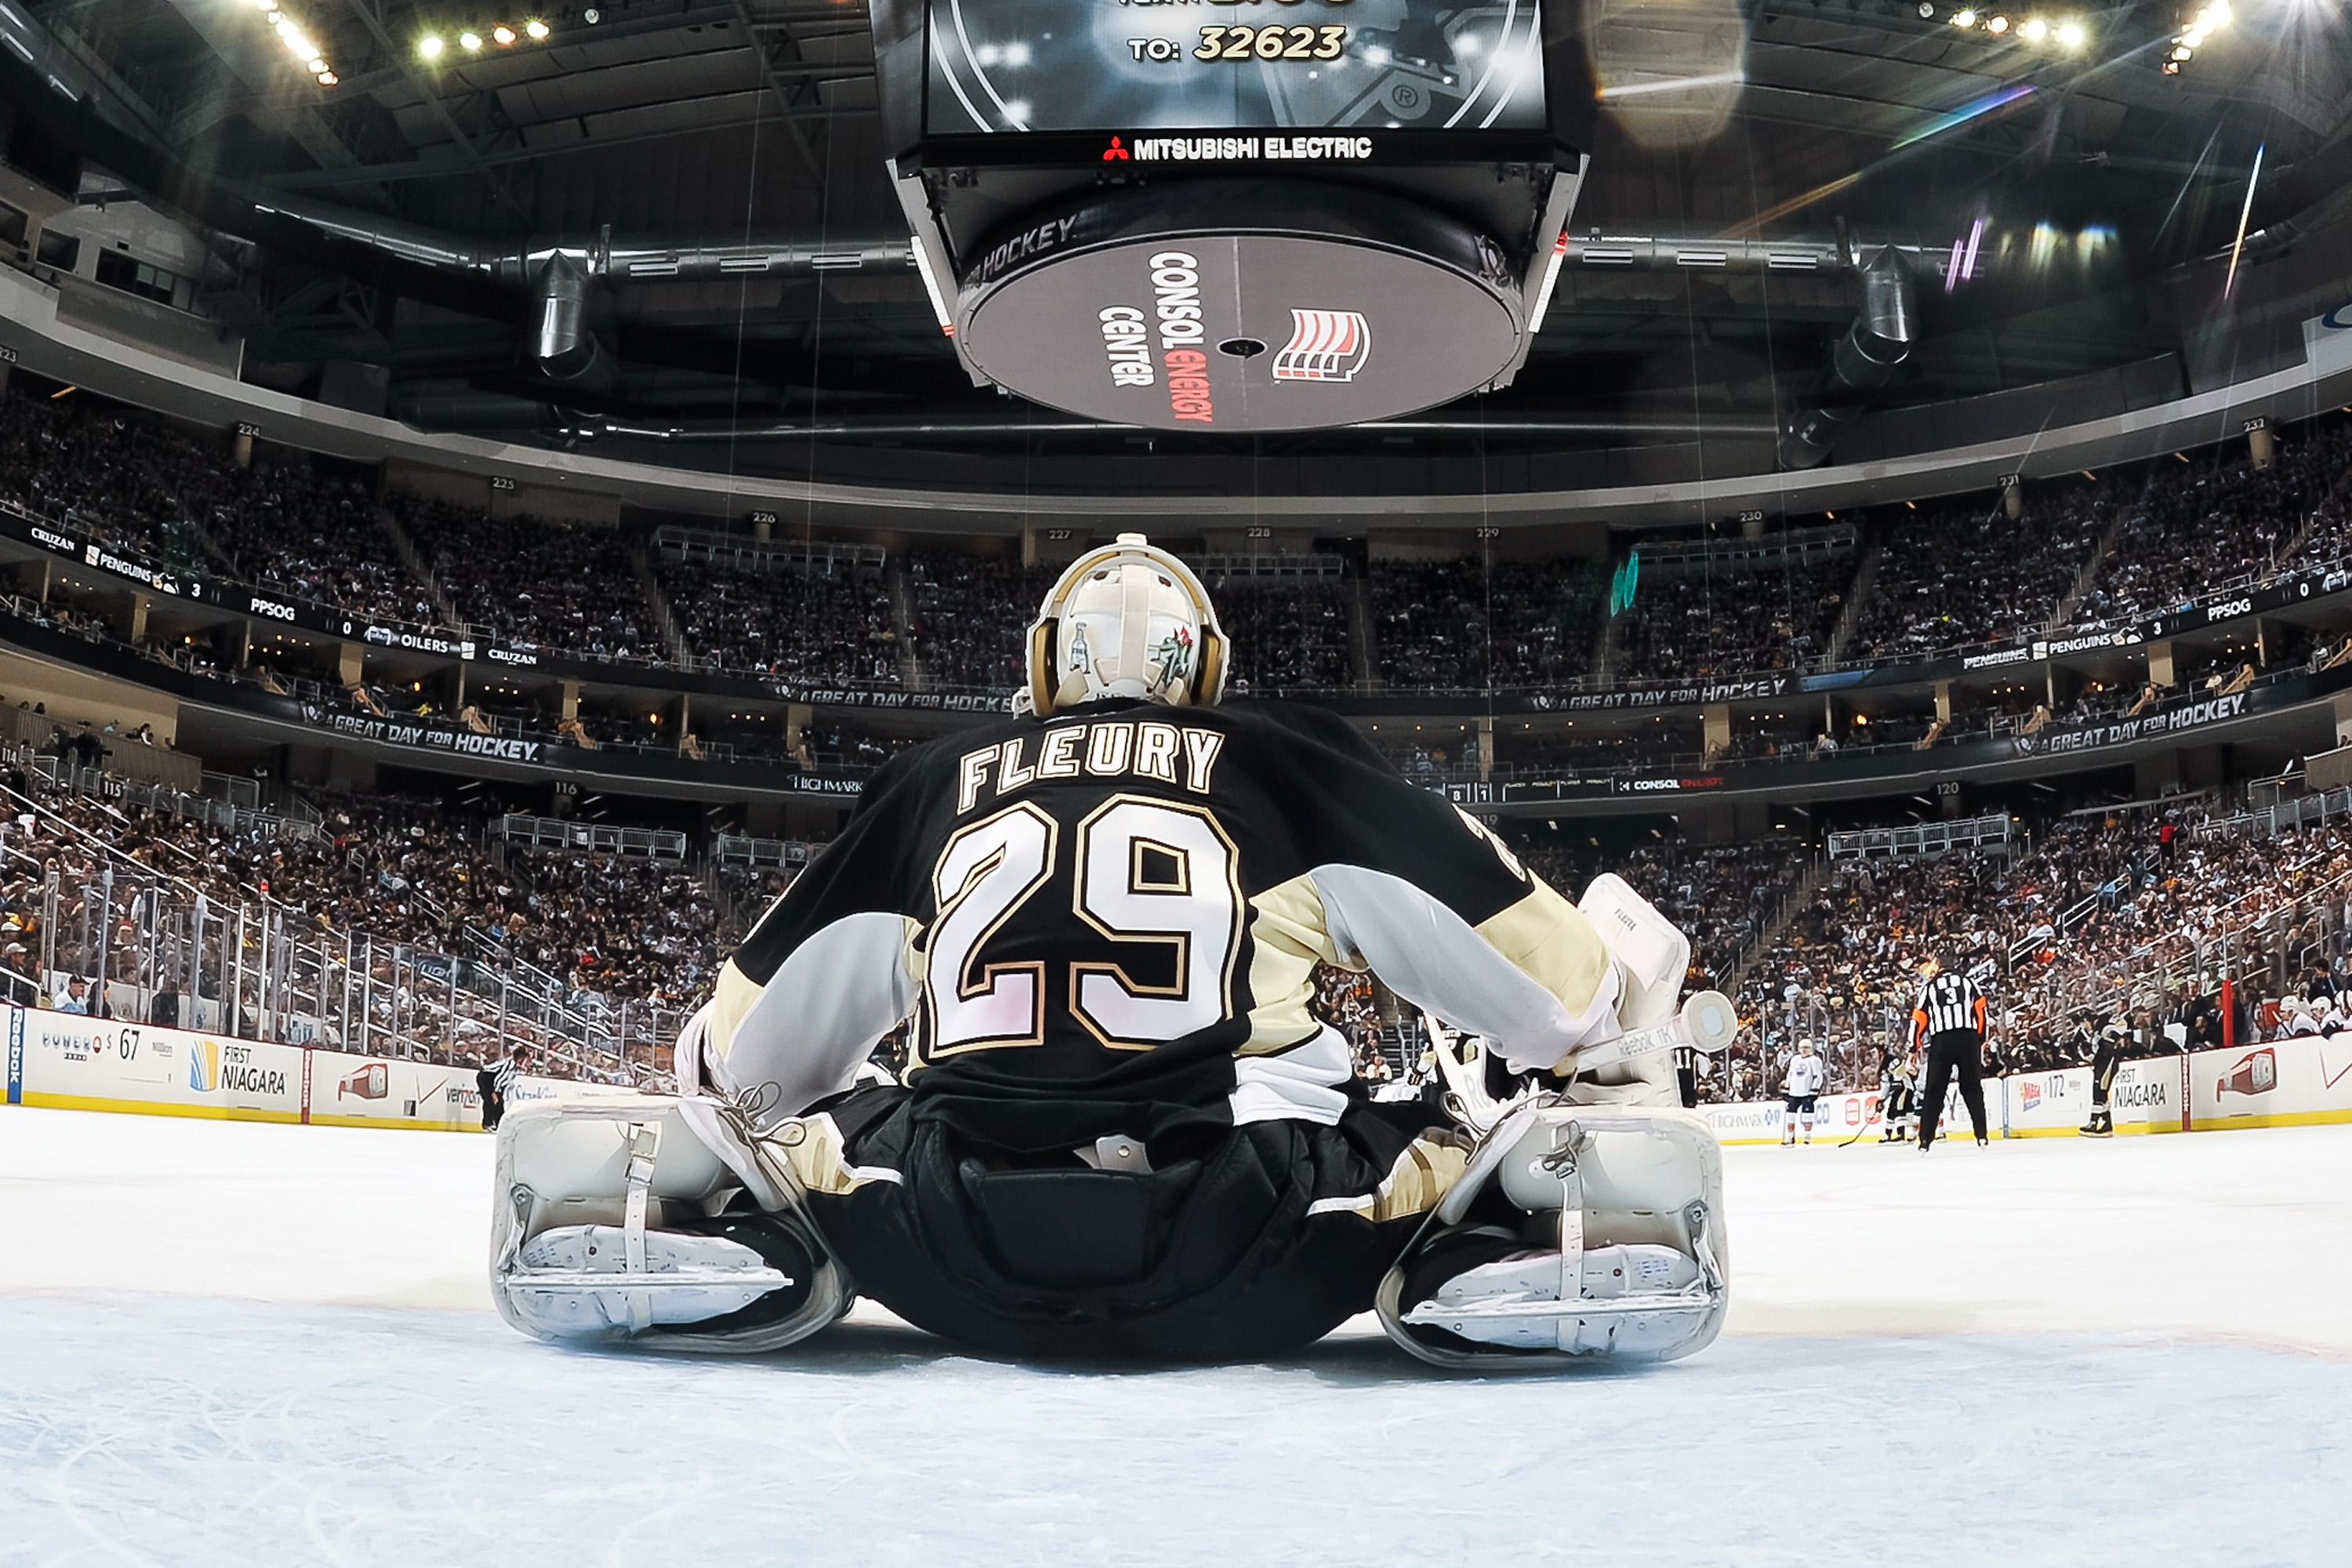 PITTSBURGH, PA - MARCH 13:  Goaltender Marc-Andre Fleury #29 of the Pittsburgh Penguins takes a breather against the Edmonton Oilers on March 13, 2011 at CONSOL Energy Center in Pittsburgh, Pennsylvania.  (Photo by Jamie Sabau/Getty Images)